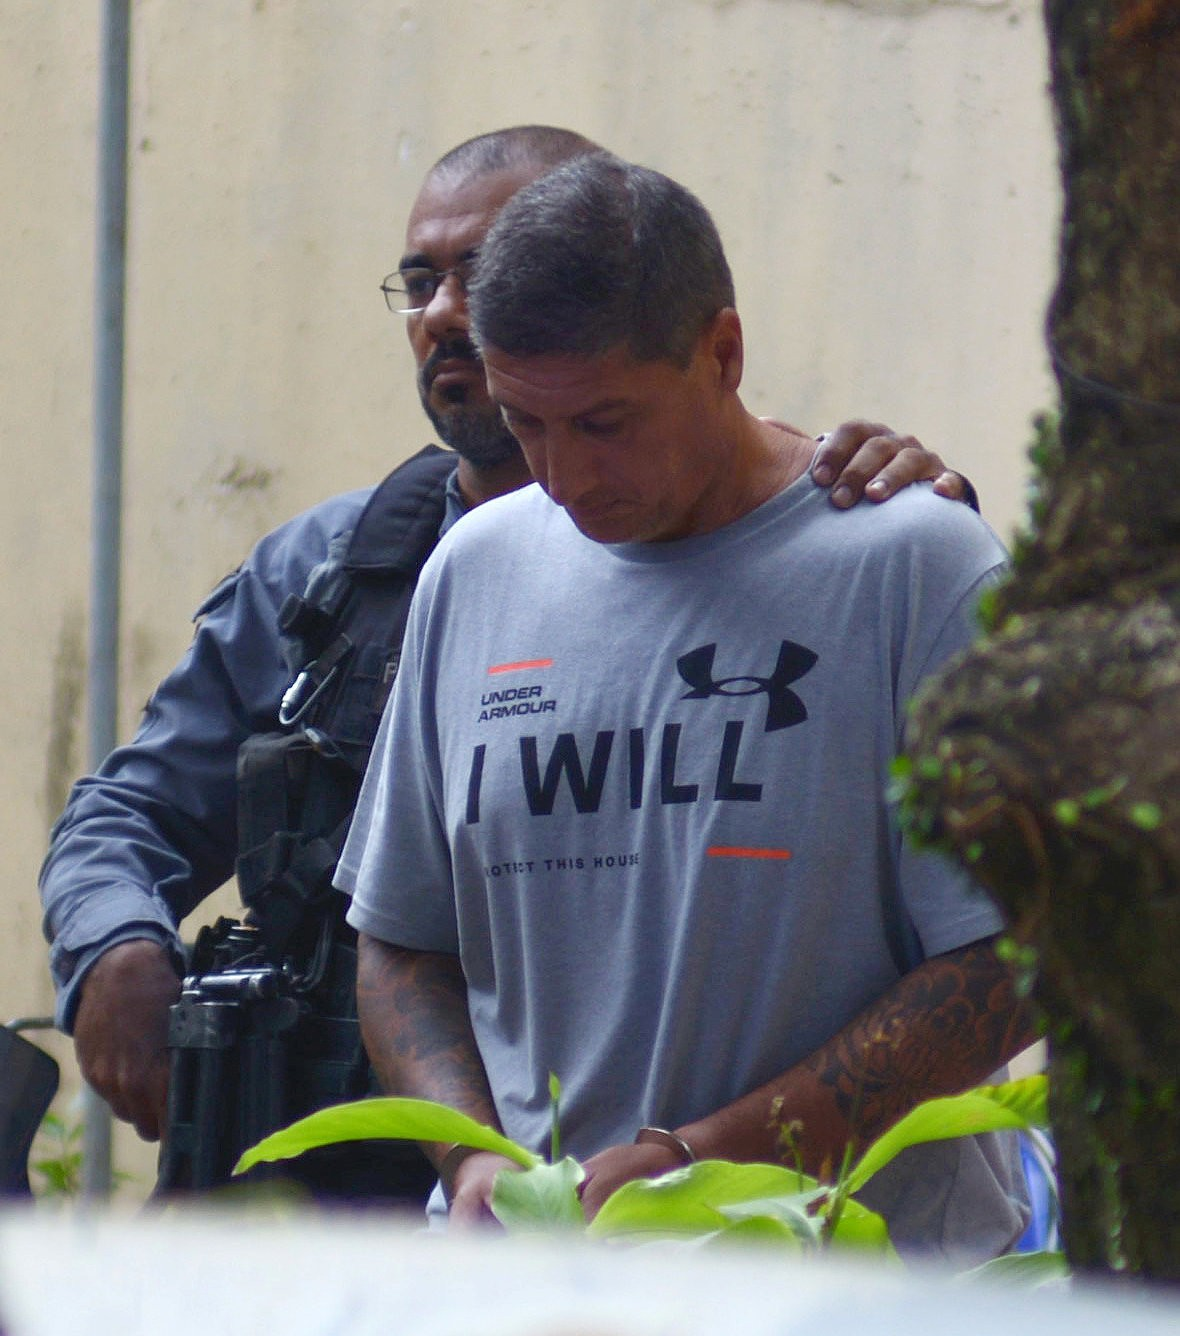 (   NYT   ) Investigators say Ronnie Lessa, suspected in the murder of Marielle Franco, has ties to Brazil's president. March 14, 2019. REUTERS/Lucas Landau